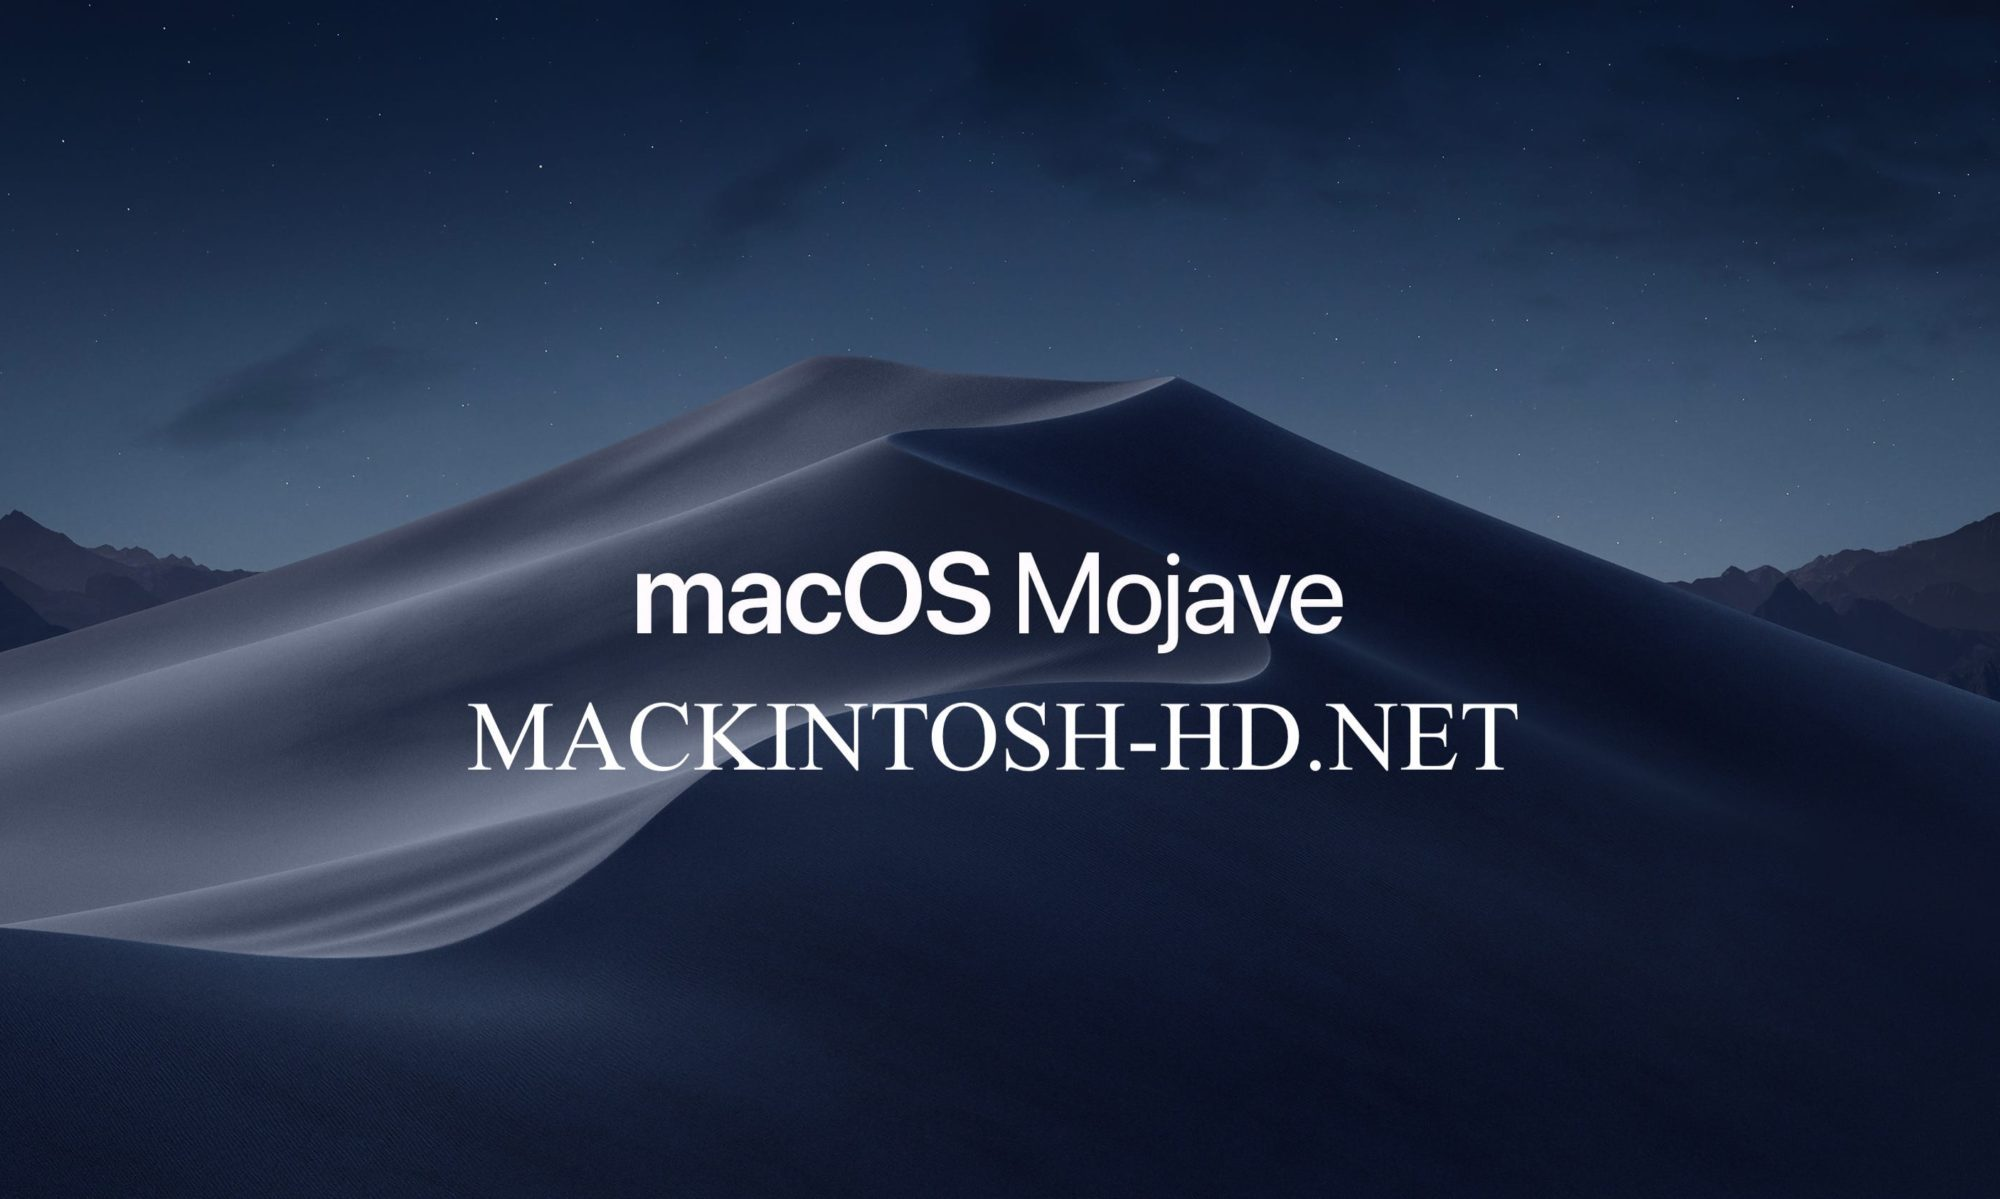 How to install macOS Mojave on OLD MACs Machines | MACKINTOSH-HD